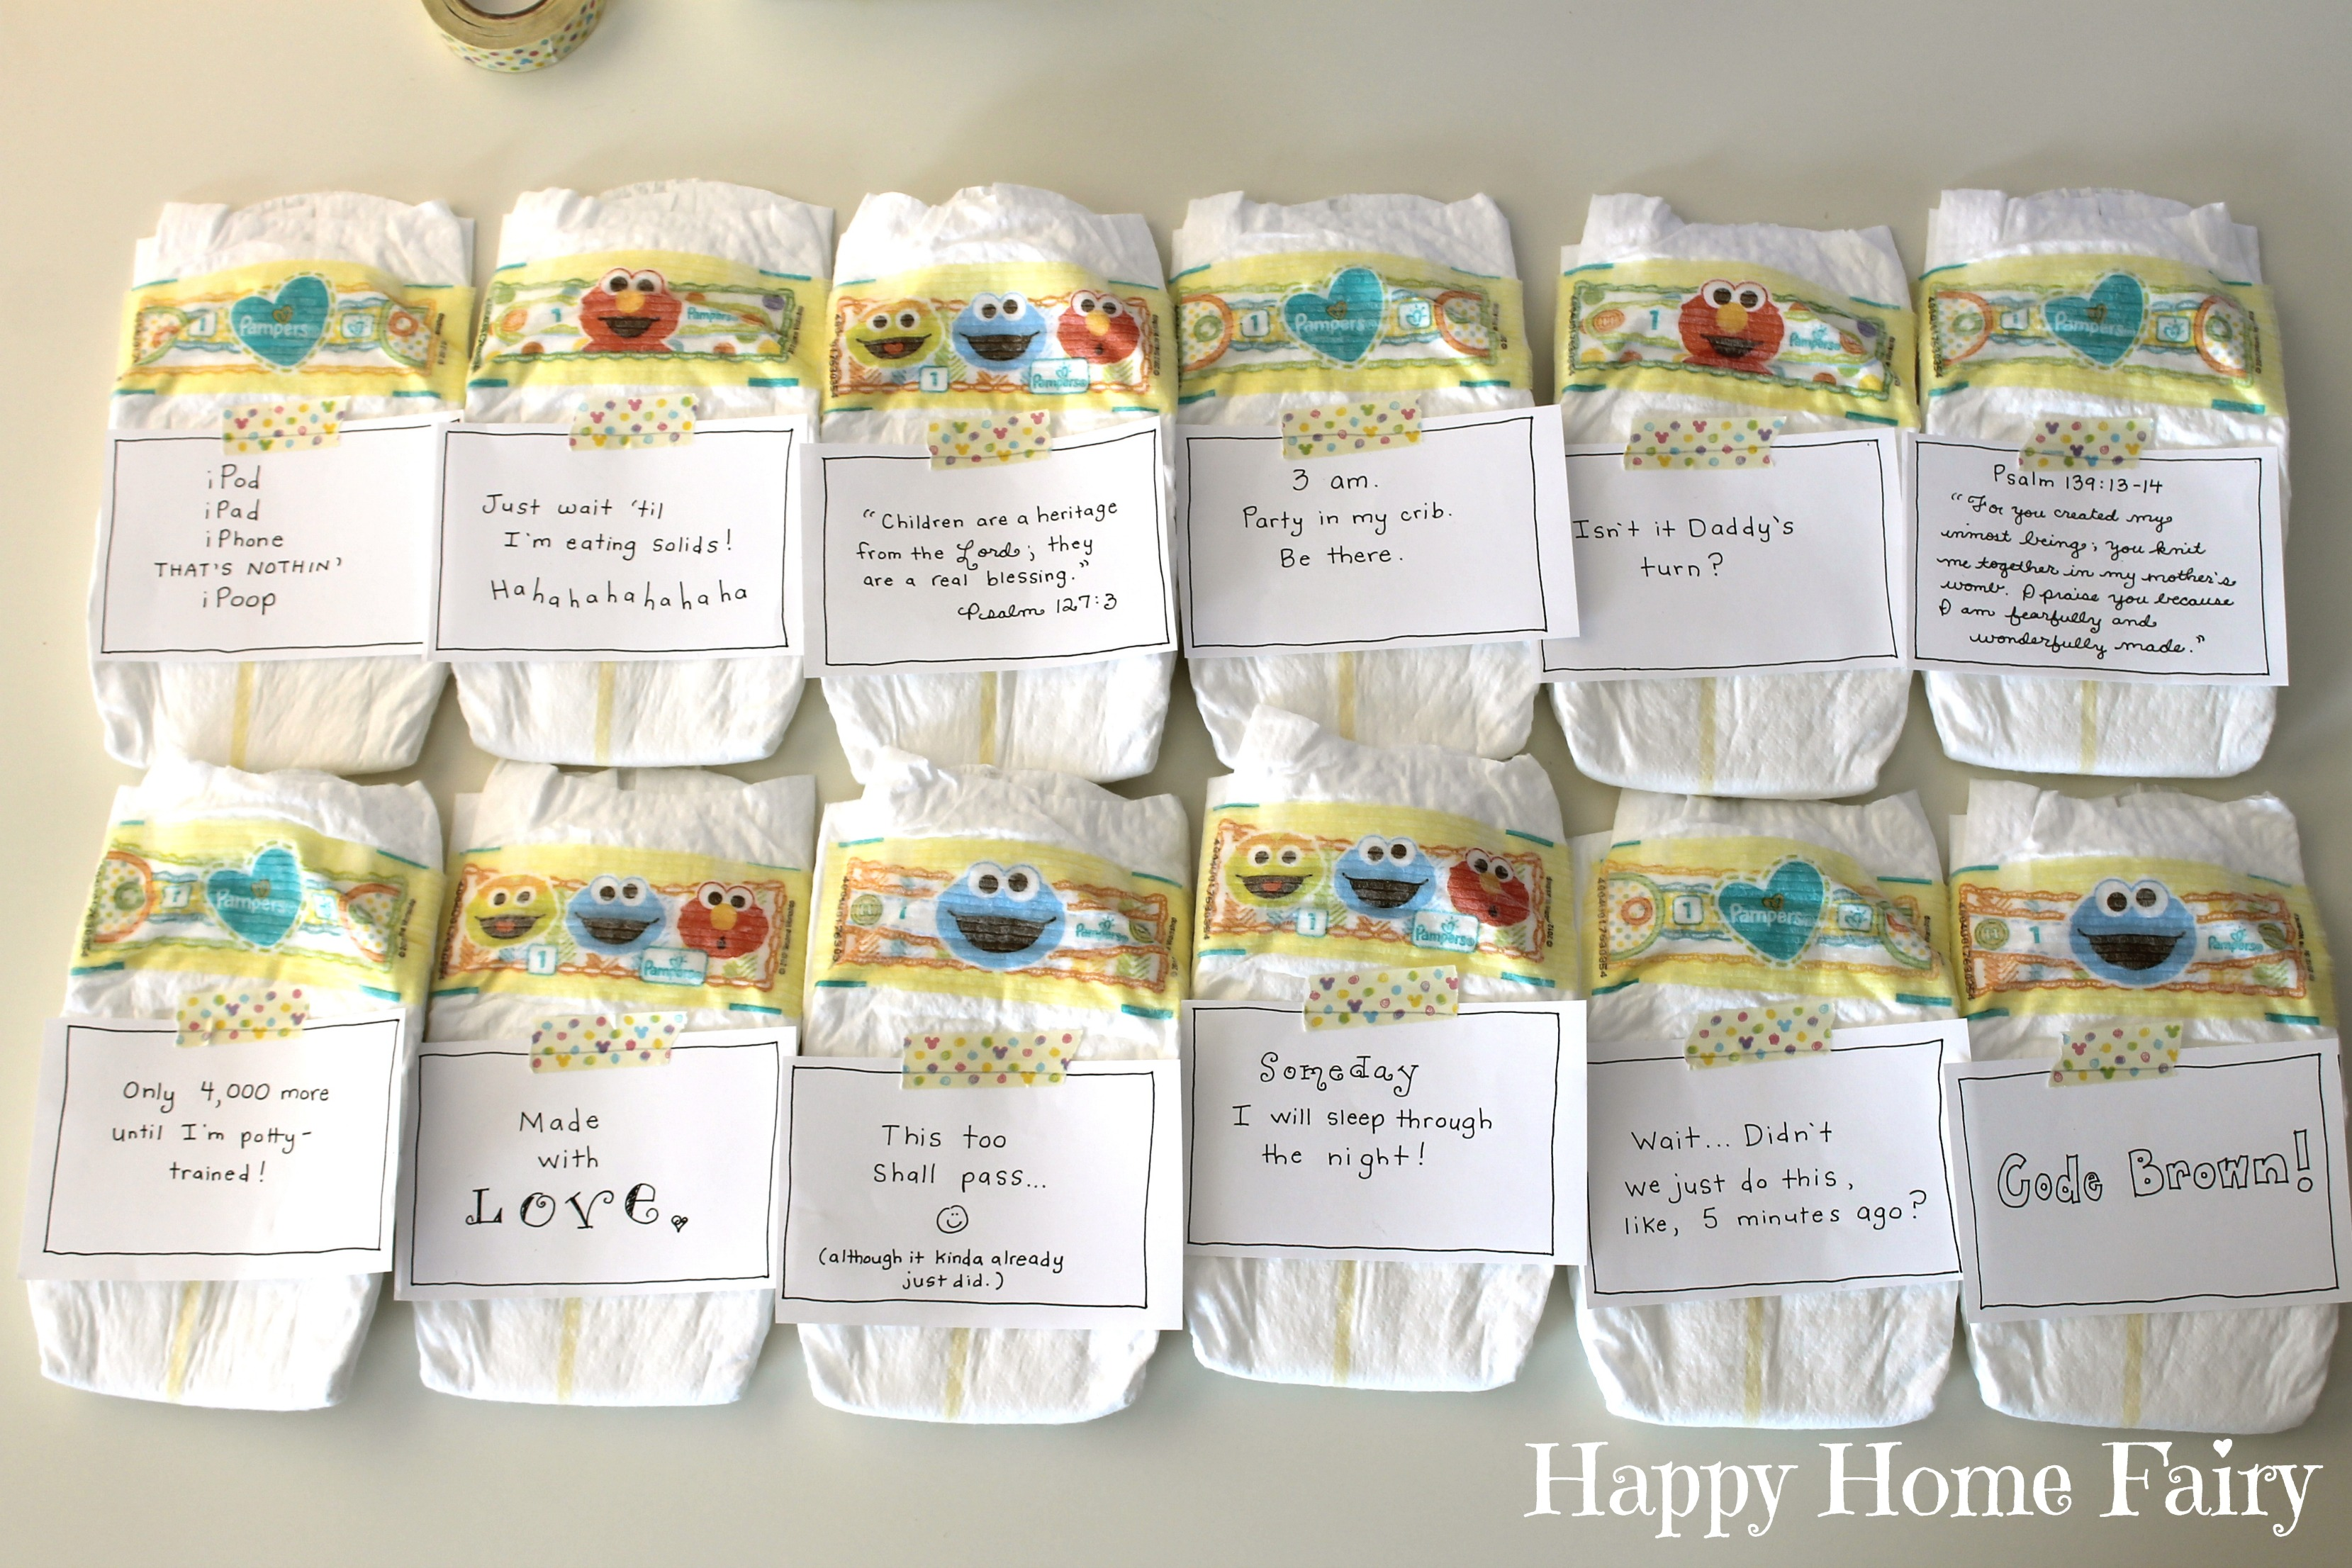 picture about Late Night Diaper Messages Free Printable named Midnight Messages for Fresh Mommies - Free of charge Printable! - Delighted